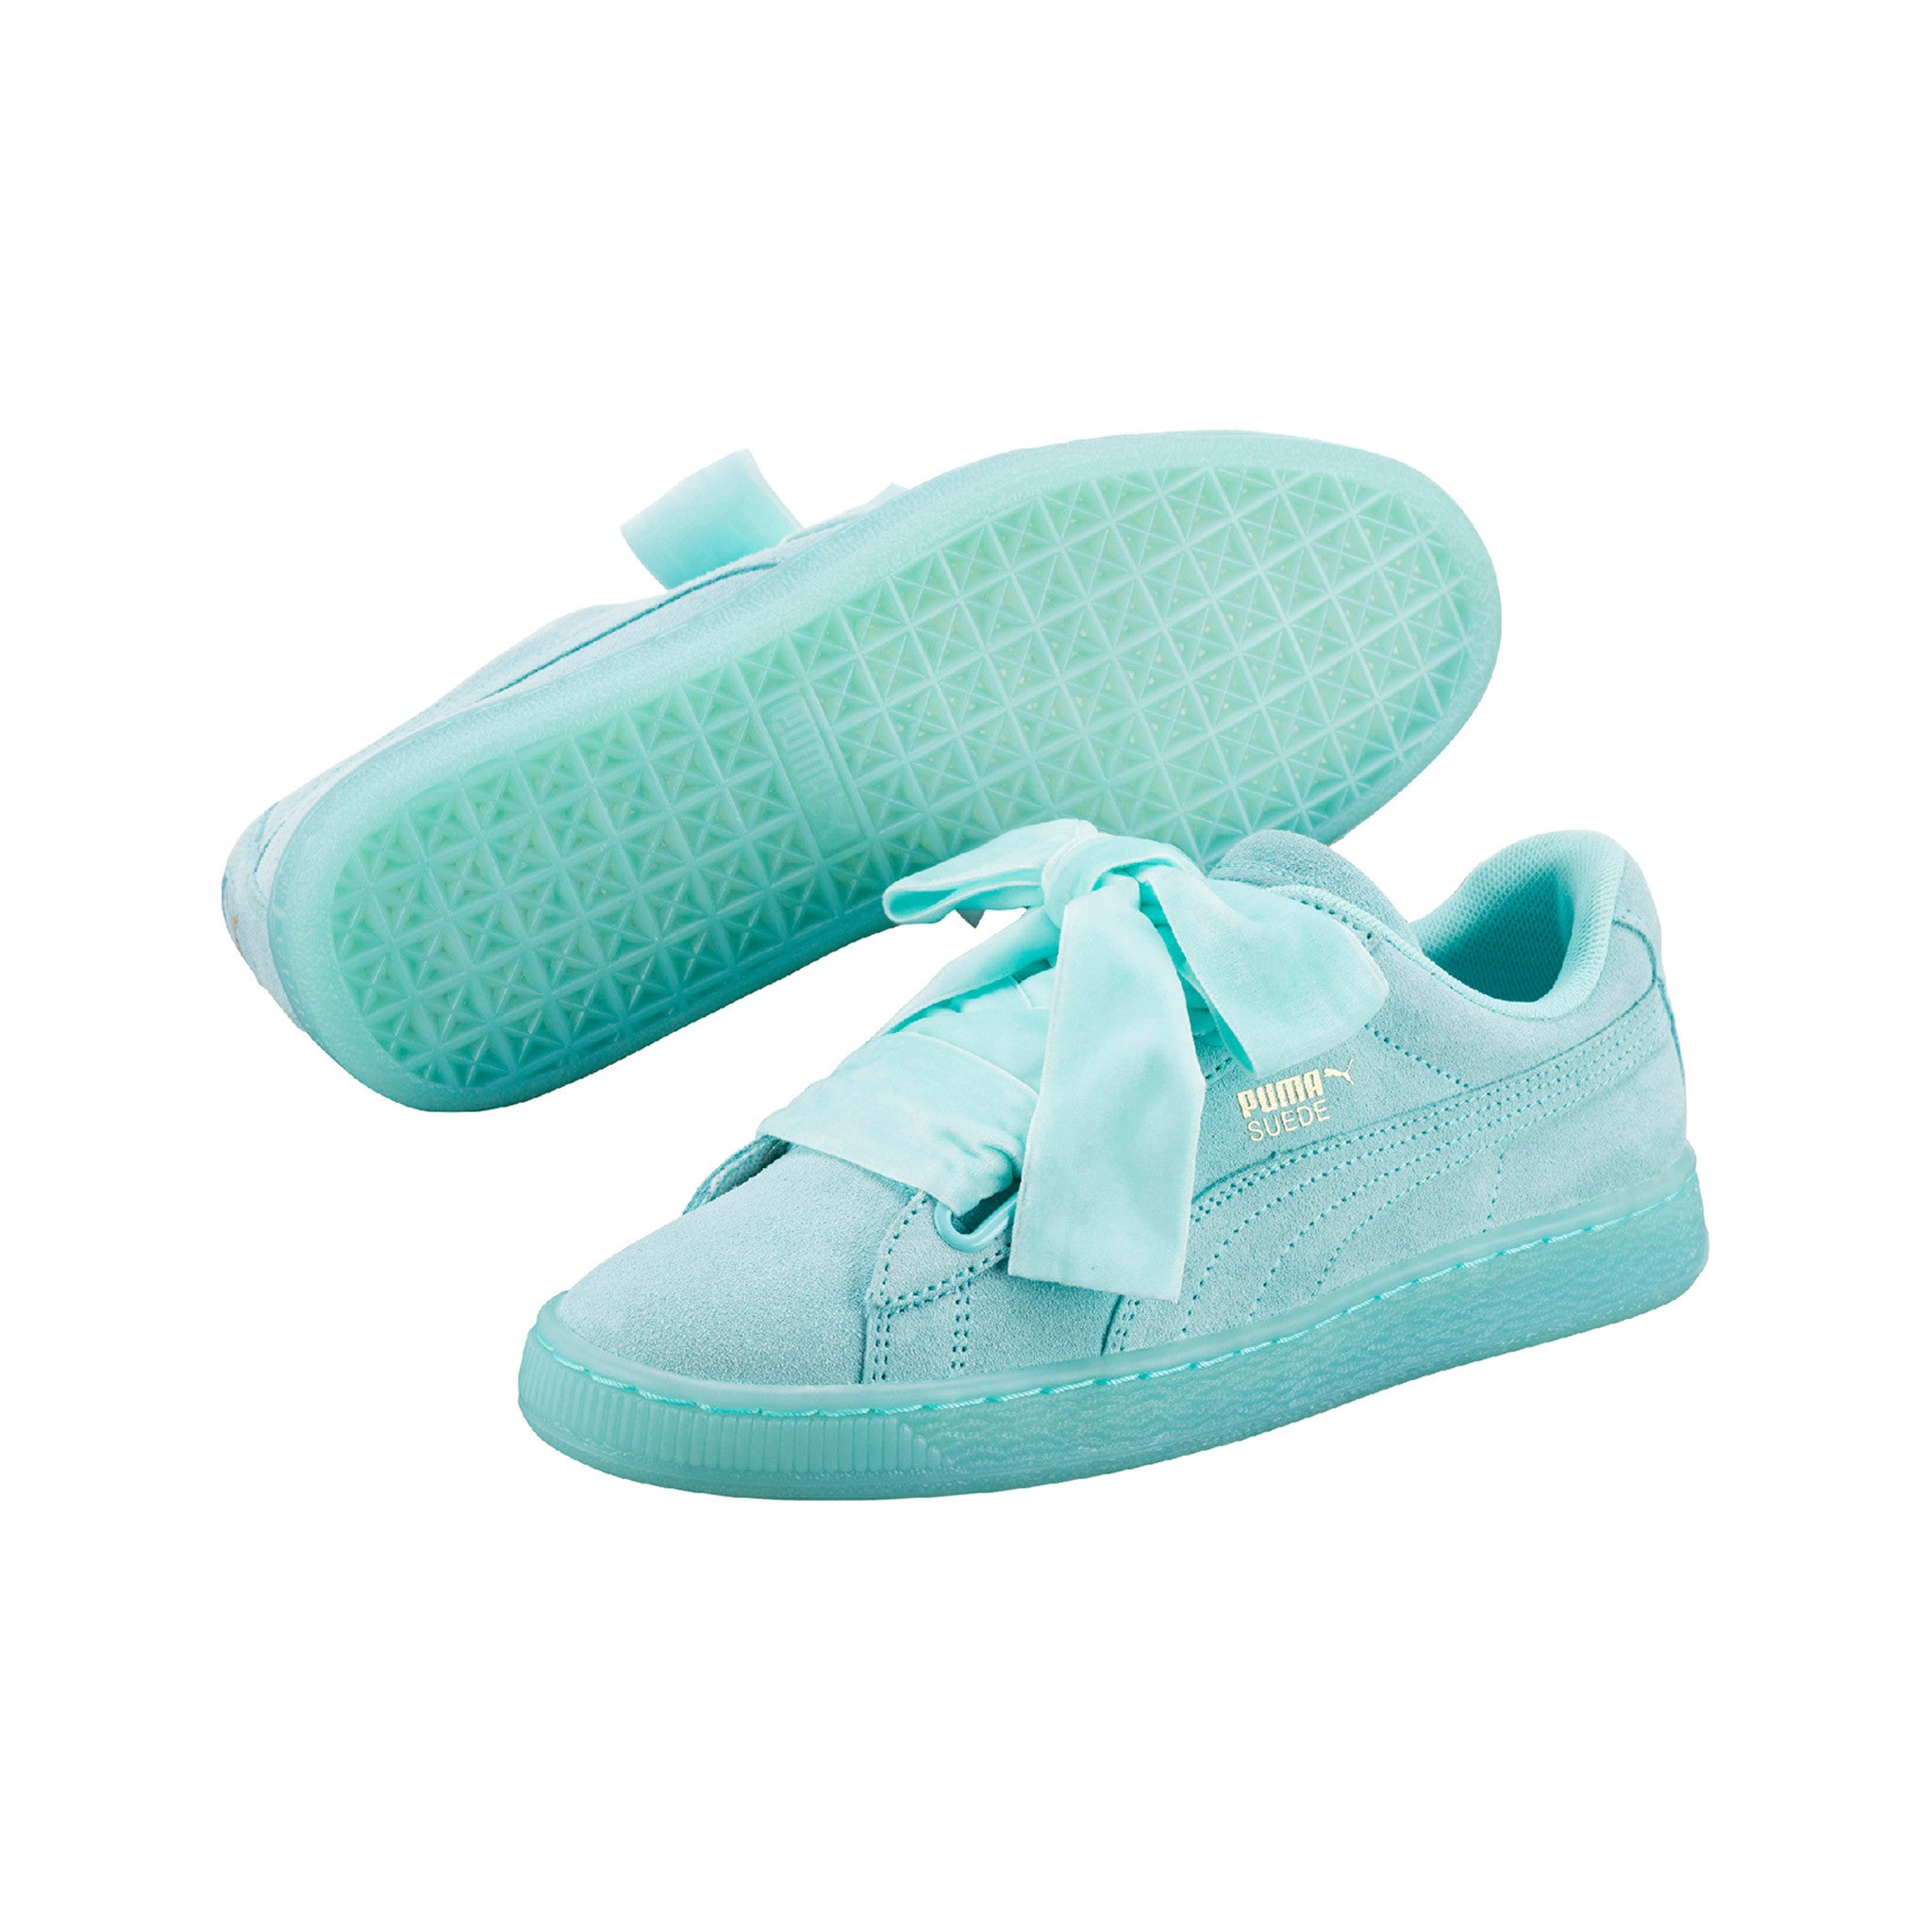 Suede Heart Reset Aruba Puma Sneakers Blue Pair View